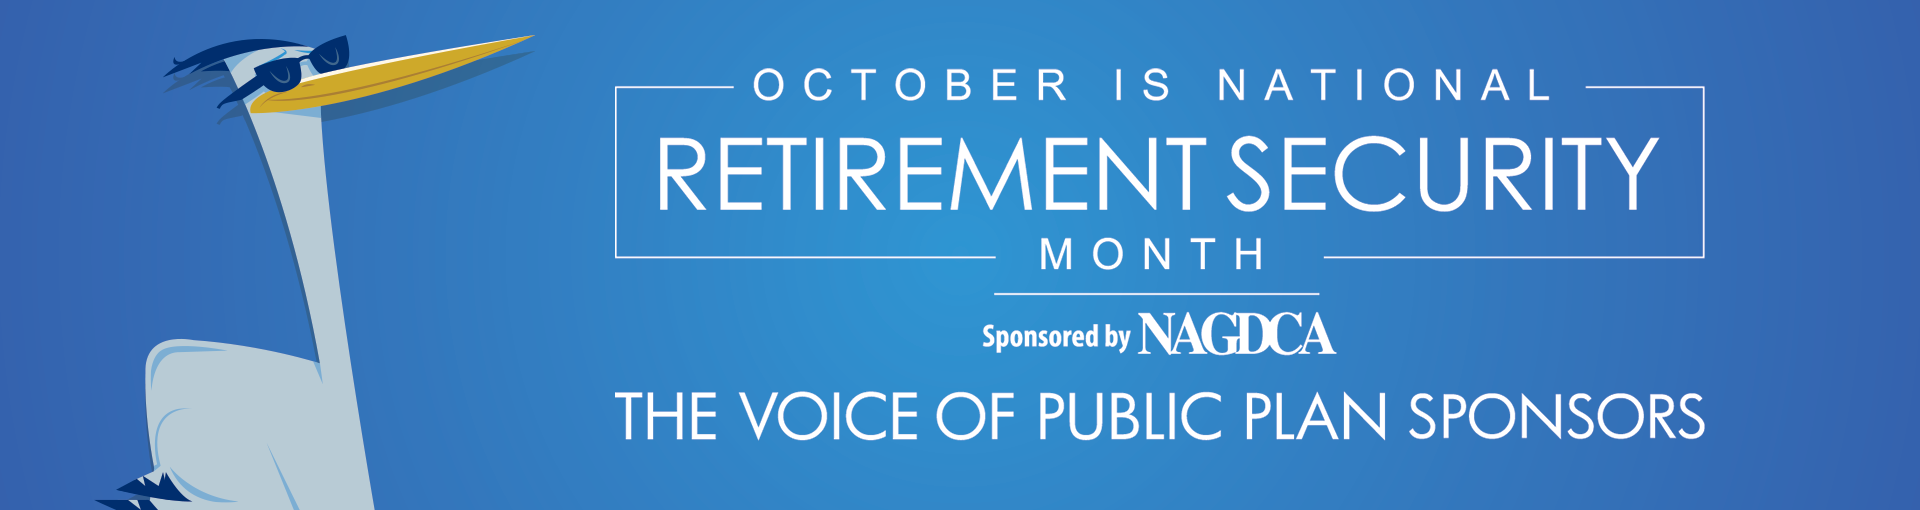 October is National Retirement Security Month (NRSM): Sponsored by NAGDCA: The Voice of Public Plan Sponsors